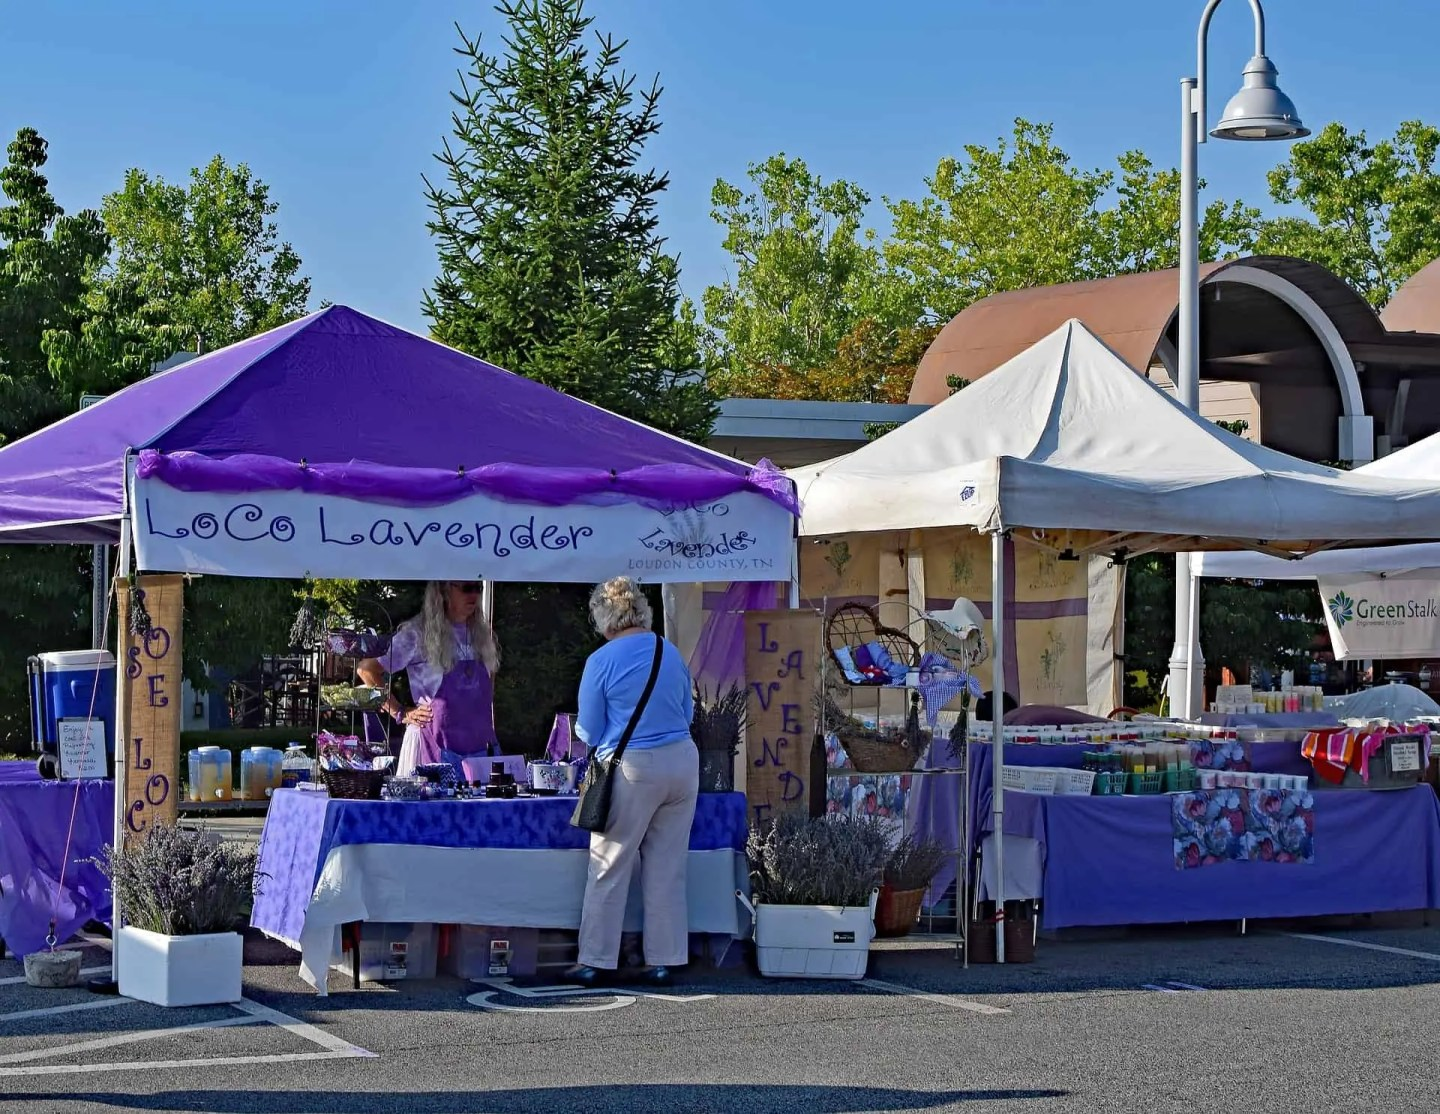 Lavender market in a nearby village on Valensole Plateau in Provence, France.